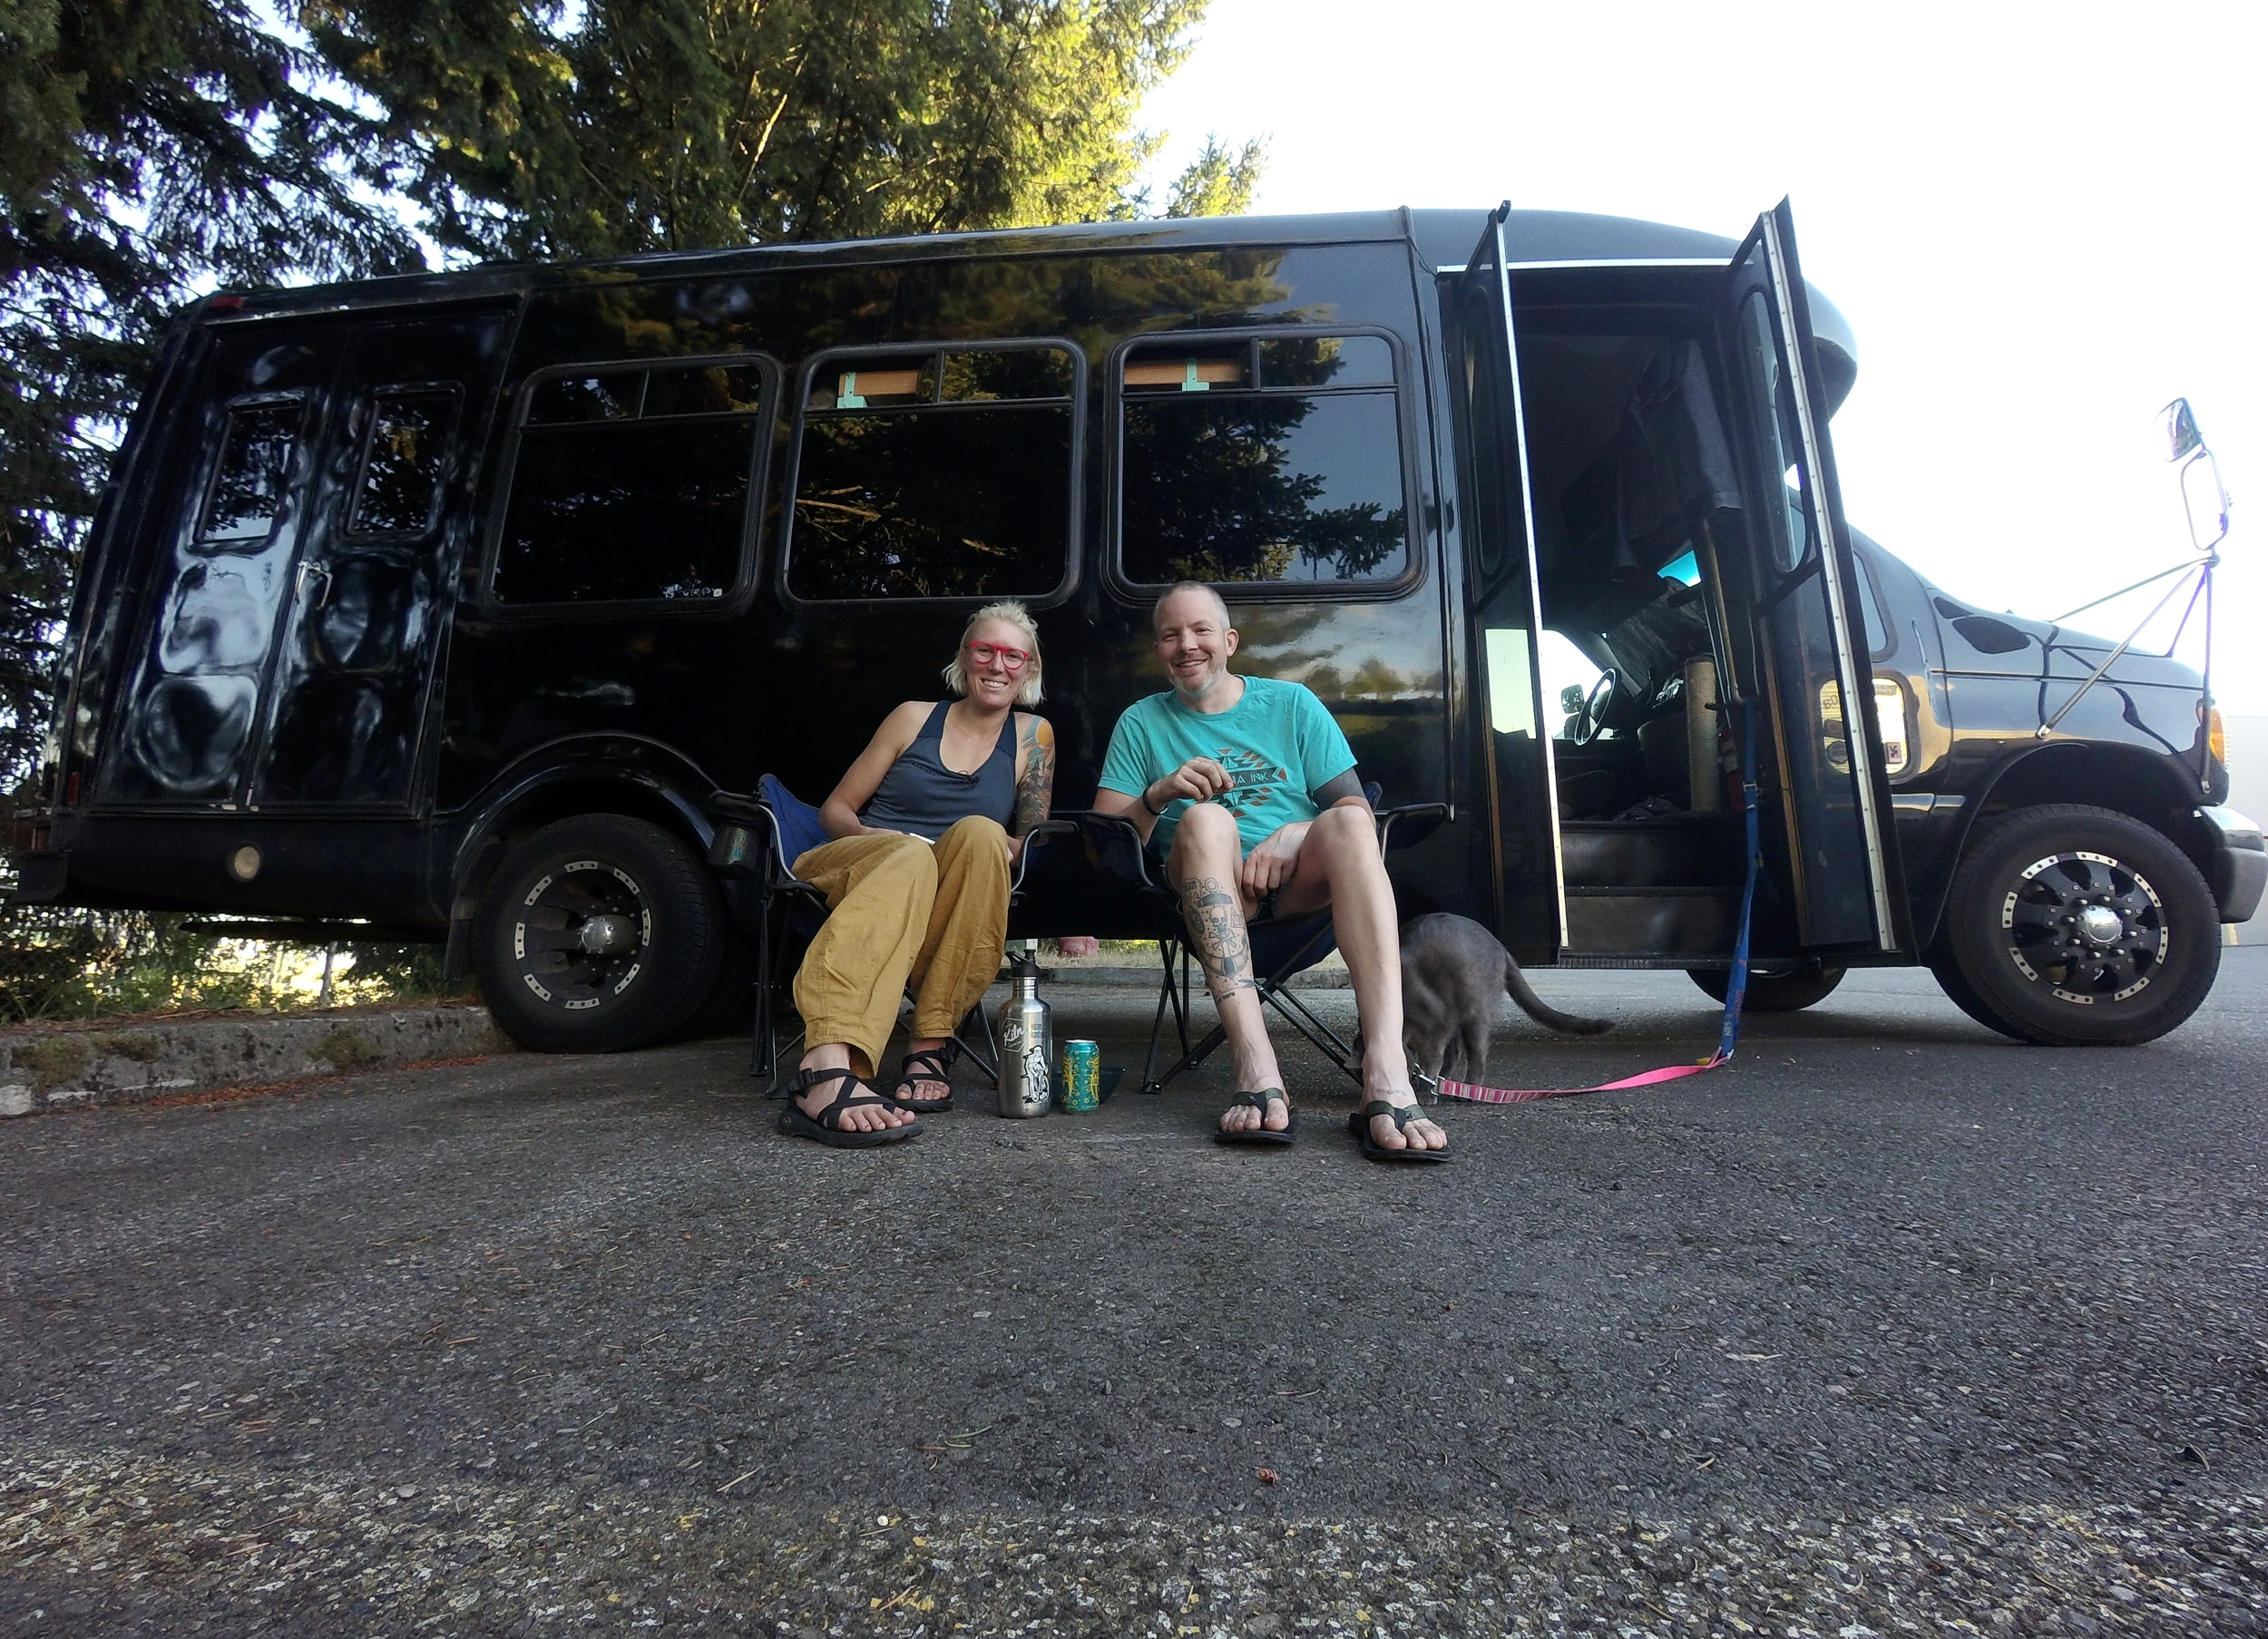 We had made it our first year living in our converted bus. Question was, would we try for another?